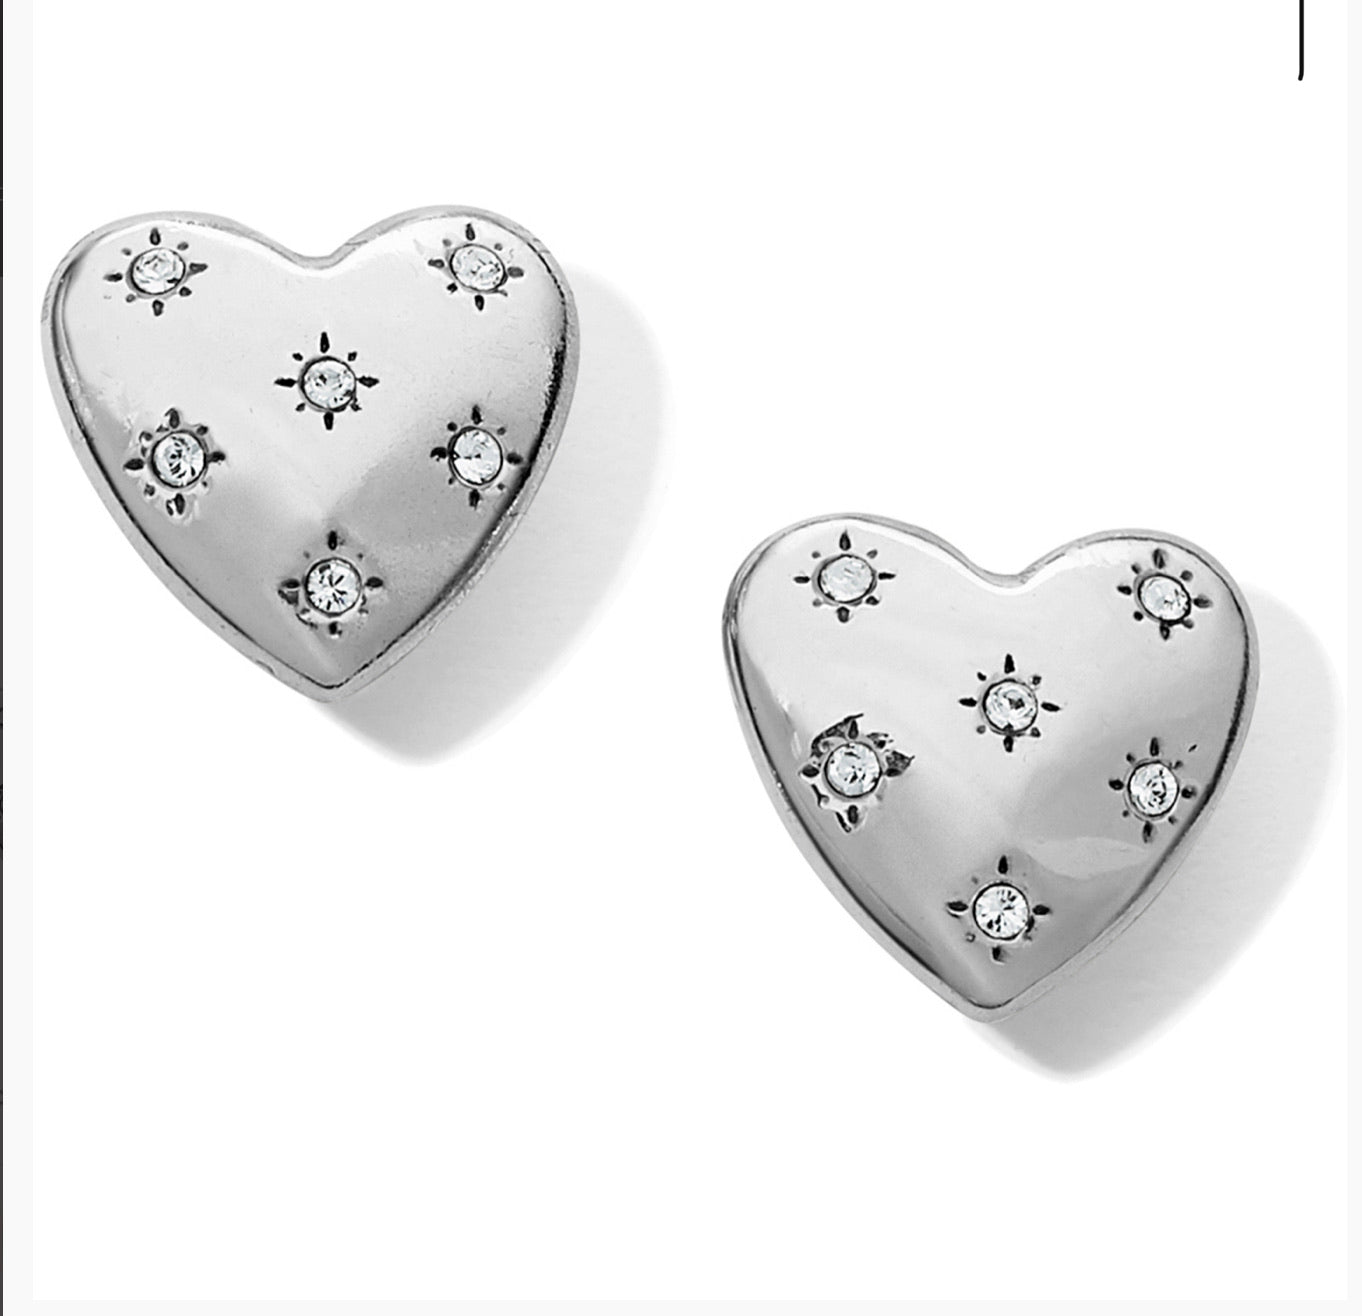 Brighton Stellar Heart Earrings